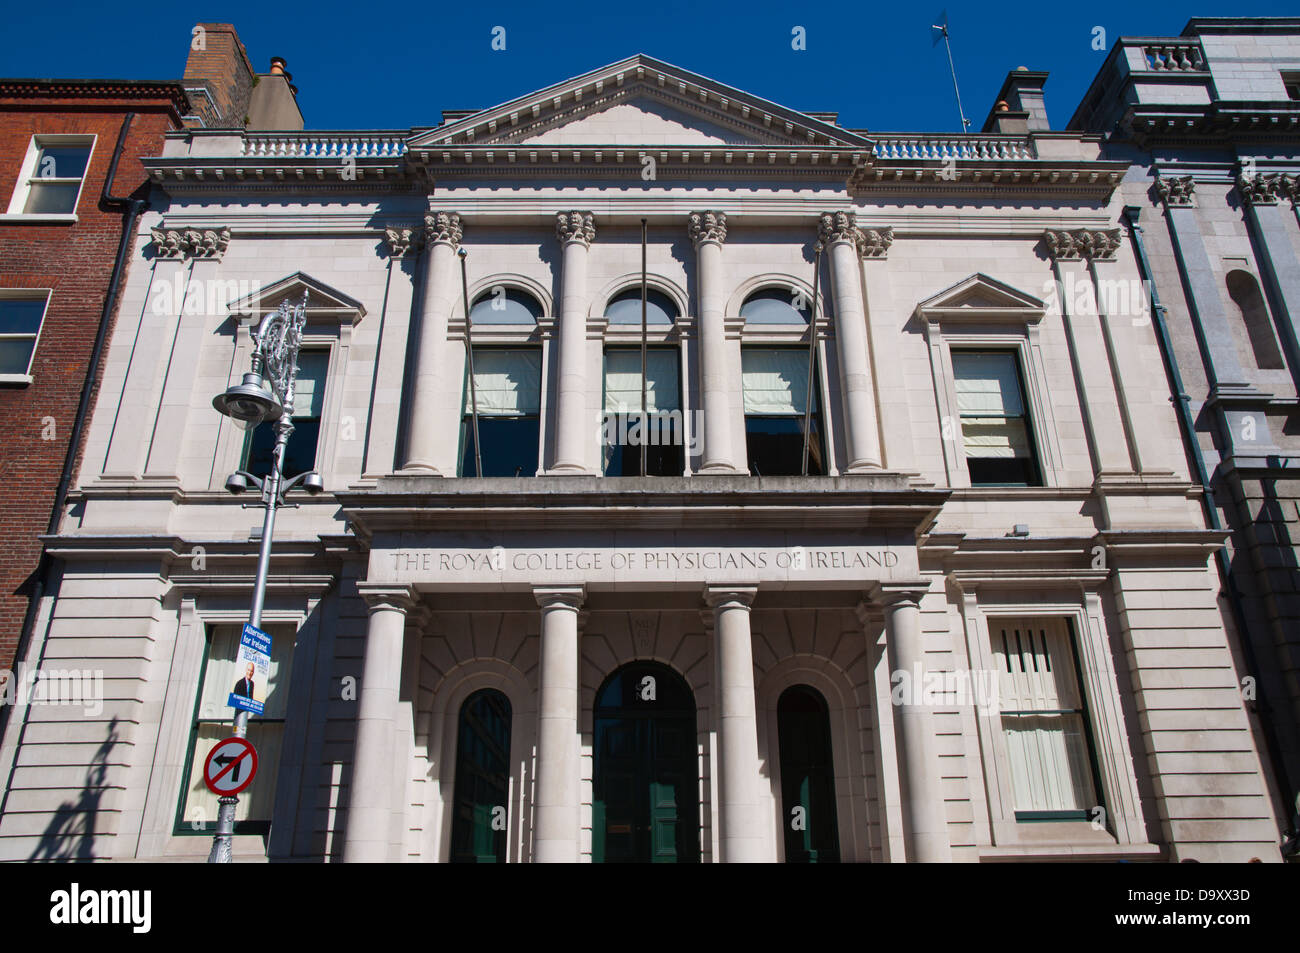 The Royal College of Physicians of Ireland building Kildare Street central Dublin Ireland Europe - Stock Image